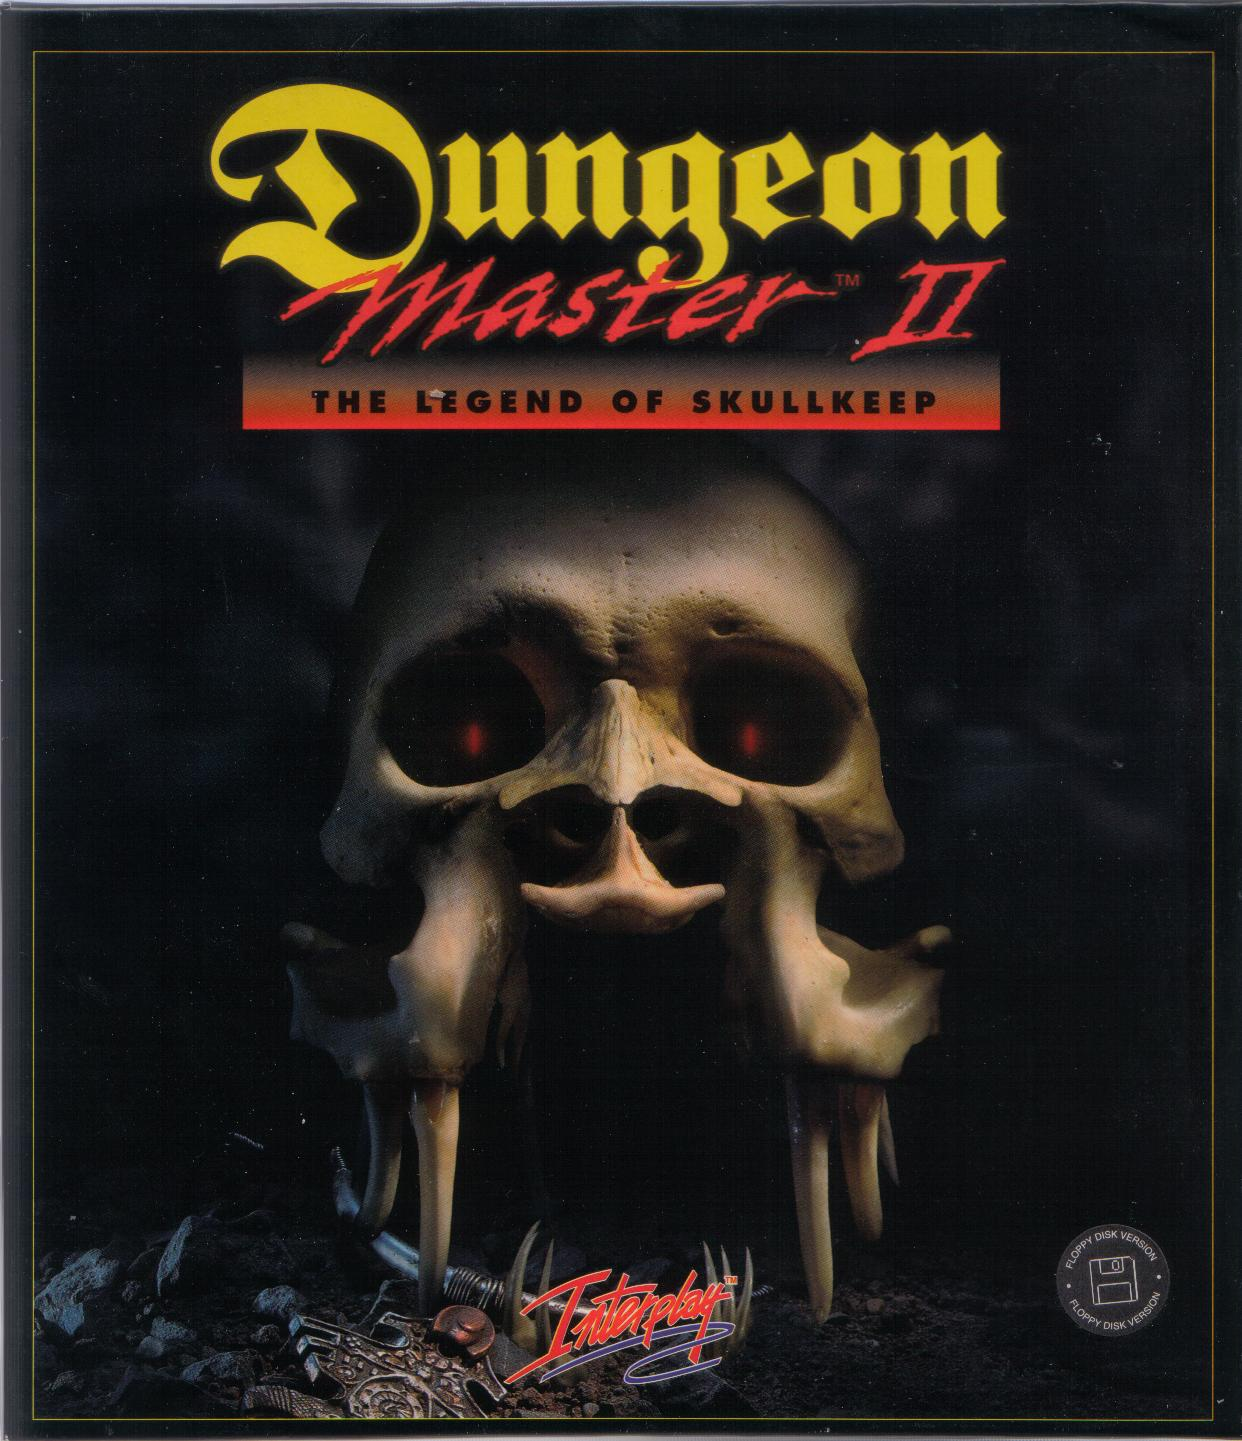 Dungeon Master II for PC (French, Floppy) - Box Front